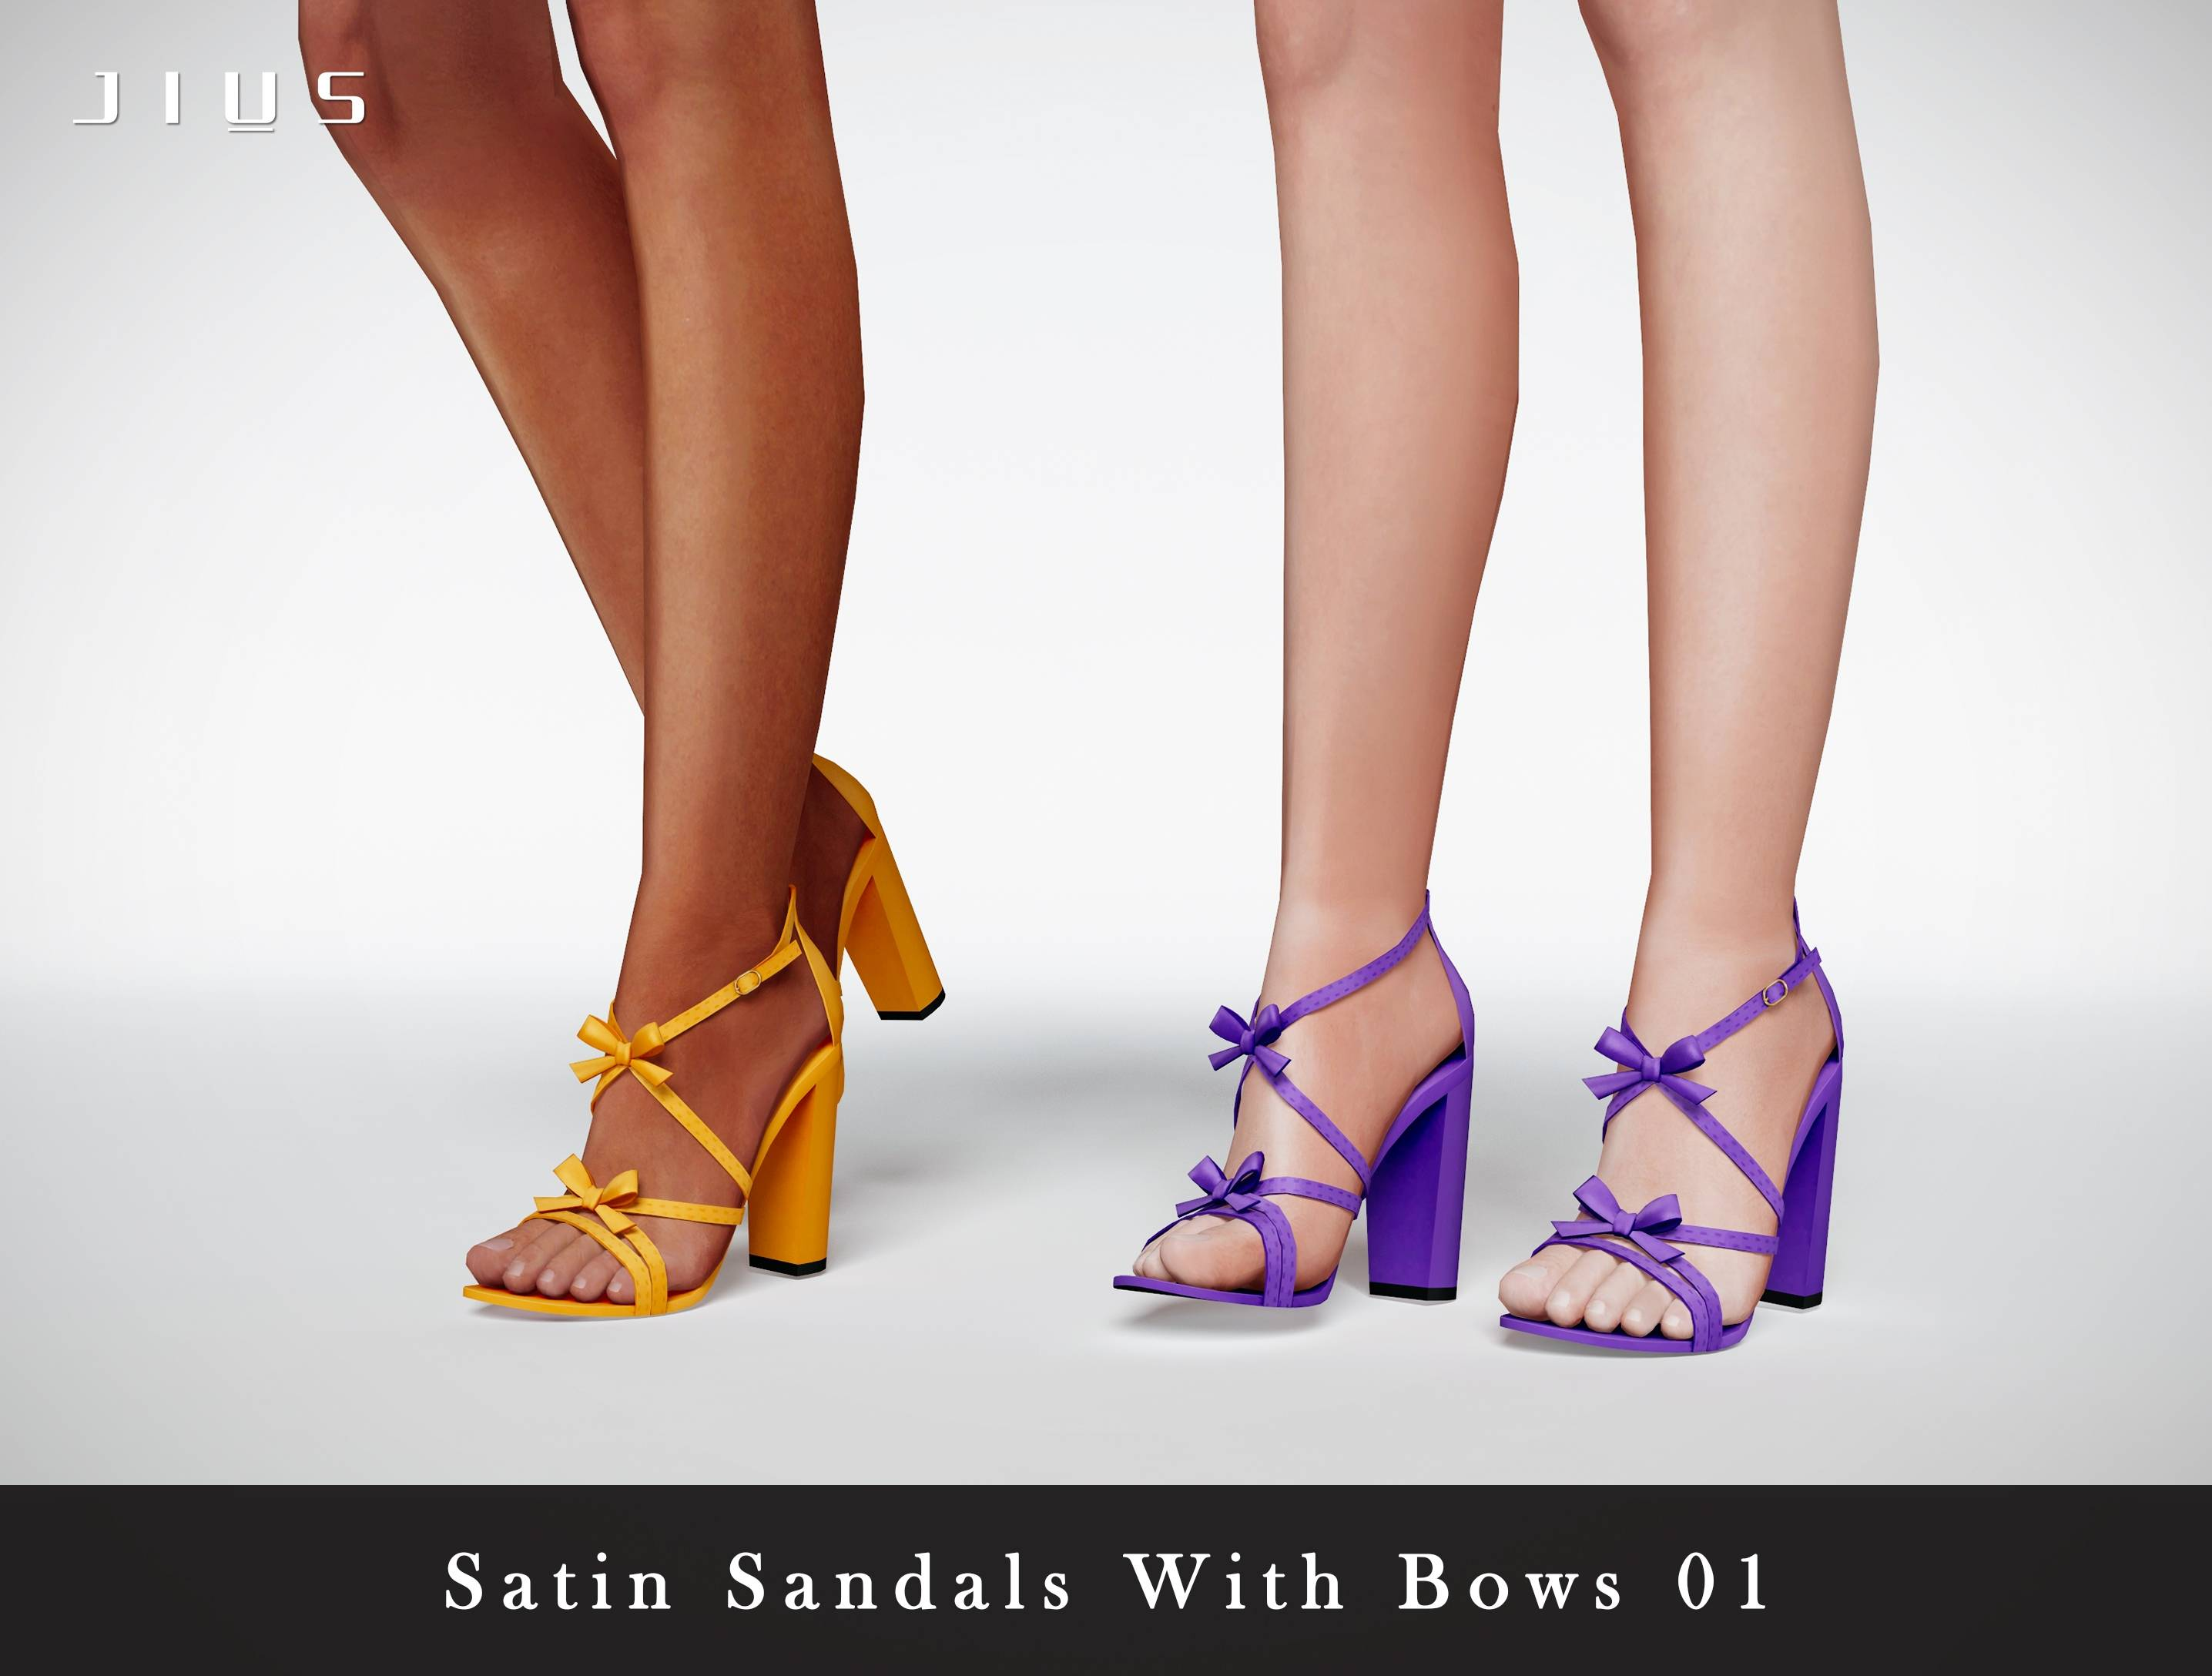 Босоножки - Satin Sandals With Bows 01